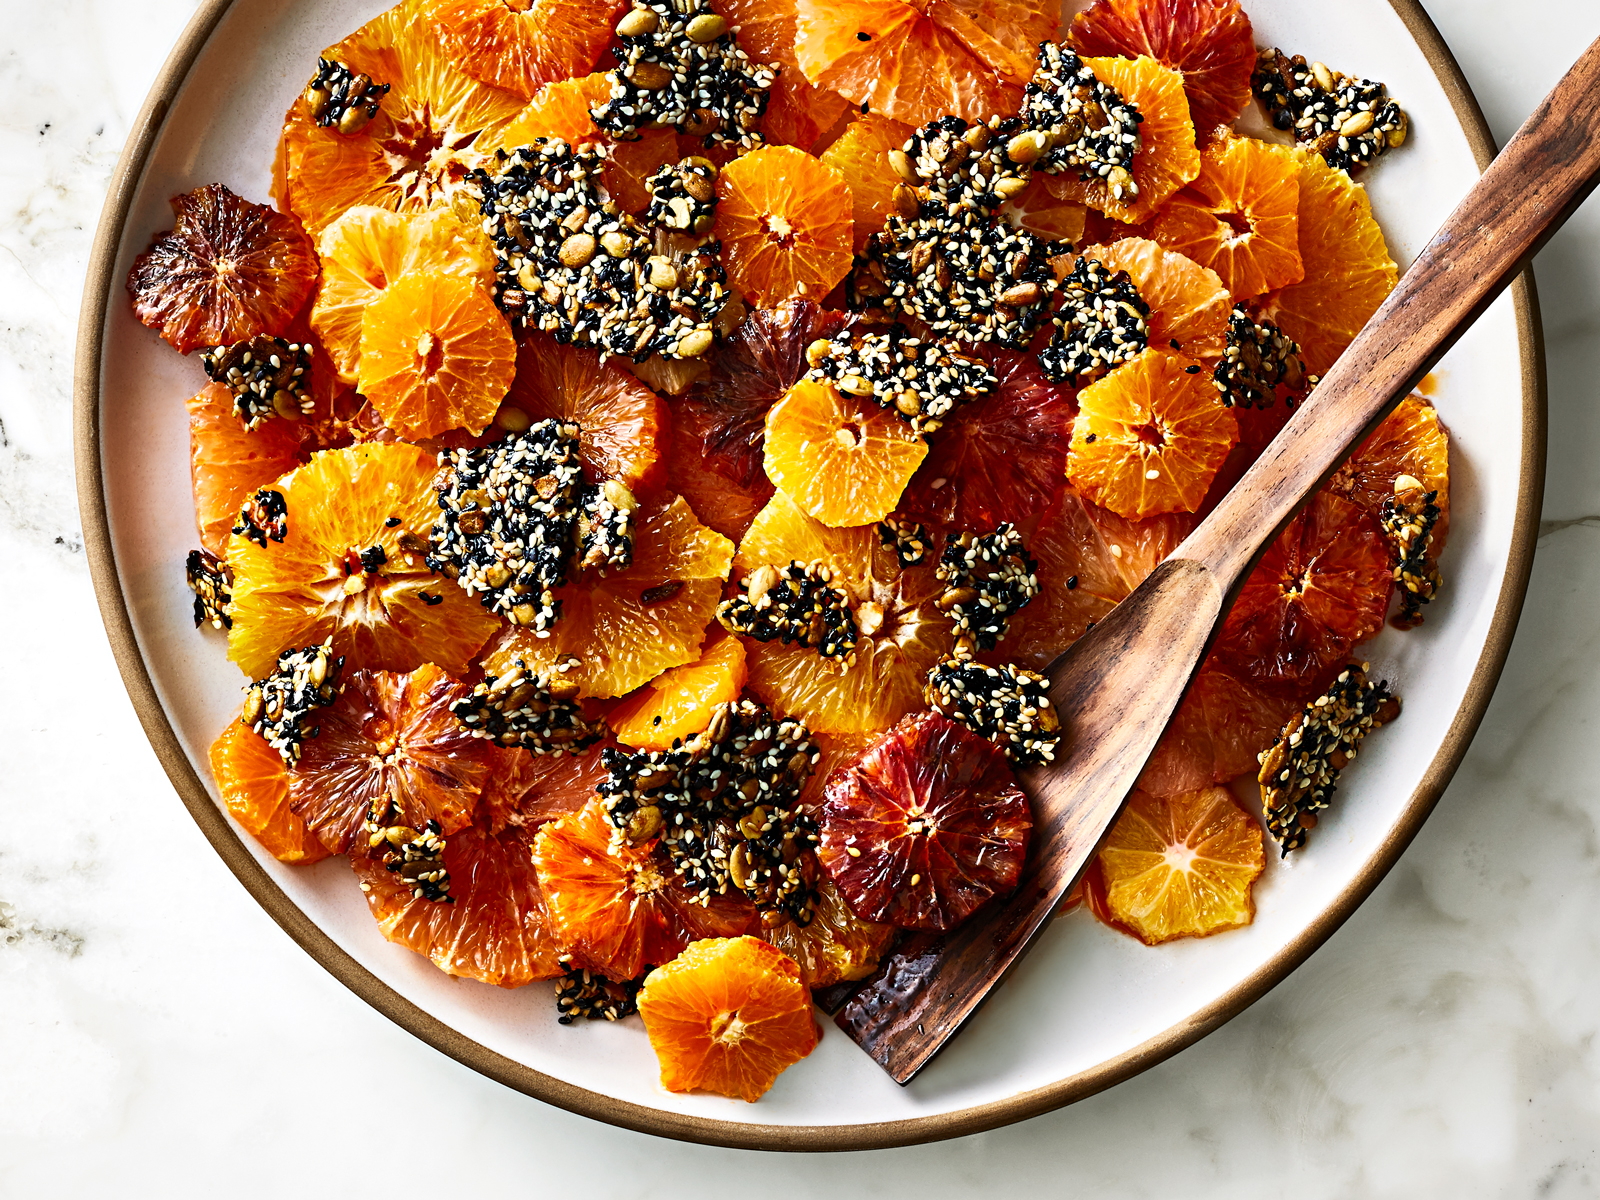 Roasted Citrus with Crunchy Three-Seed Brittle